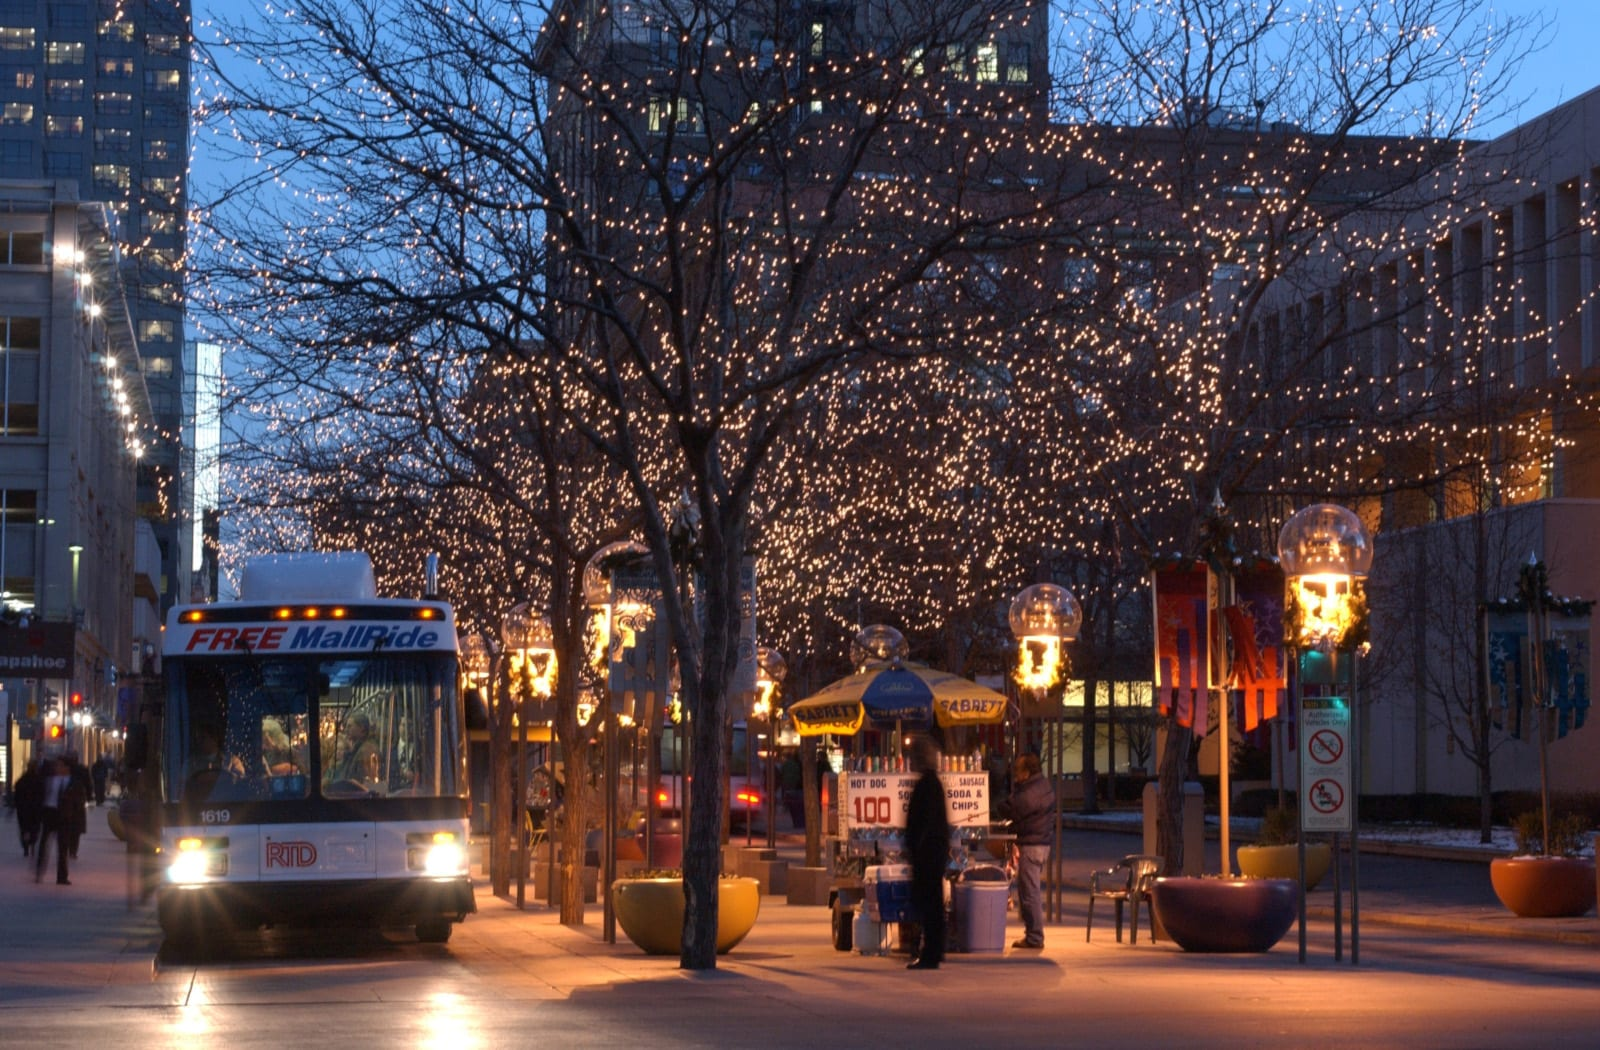 16th Street Mall Shuttle Bus Night Denver CO